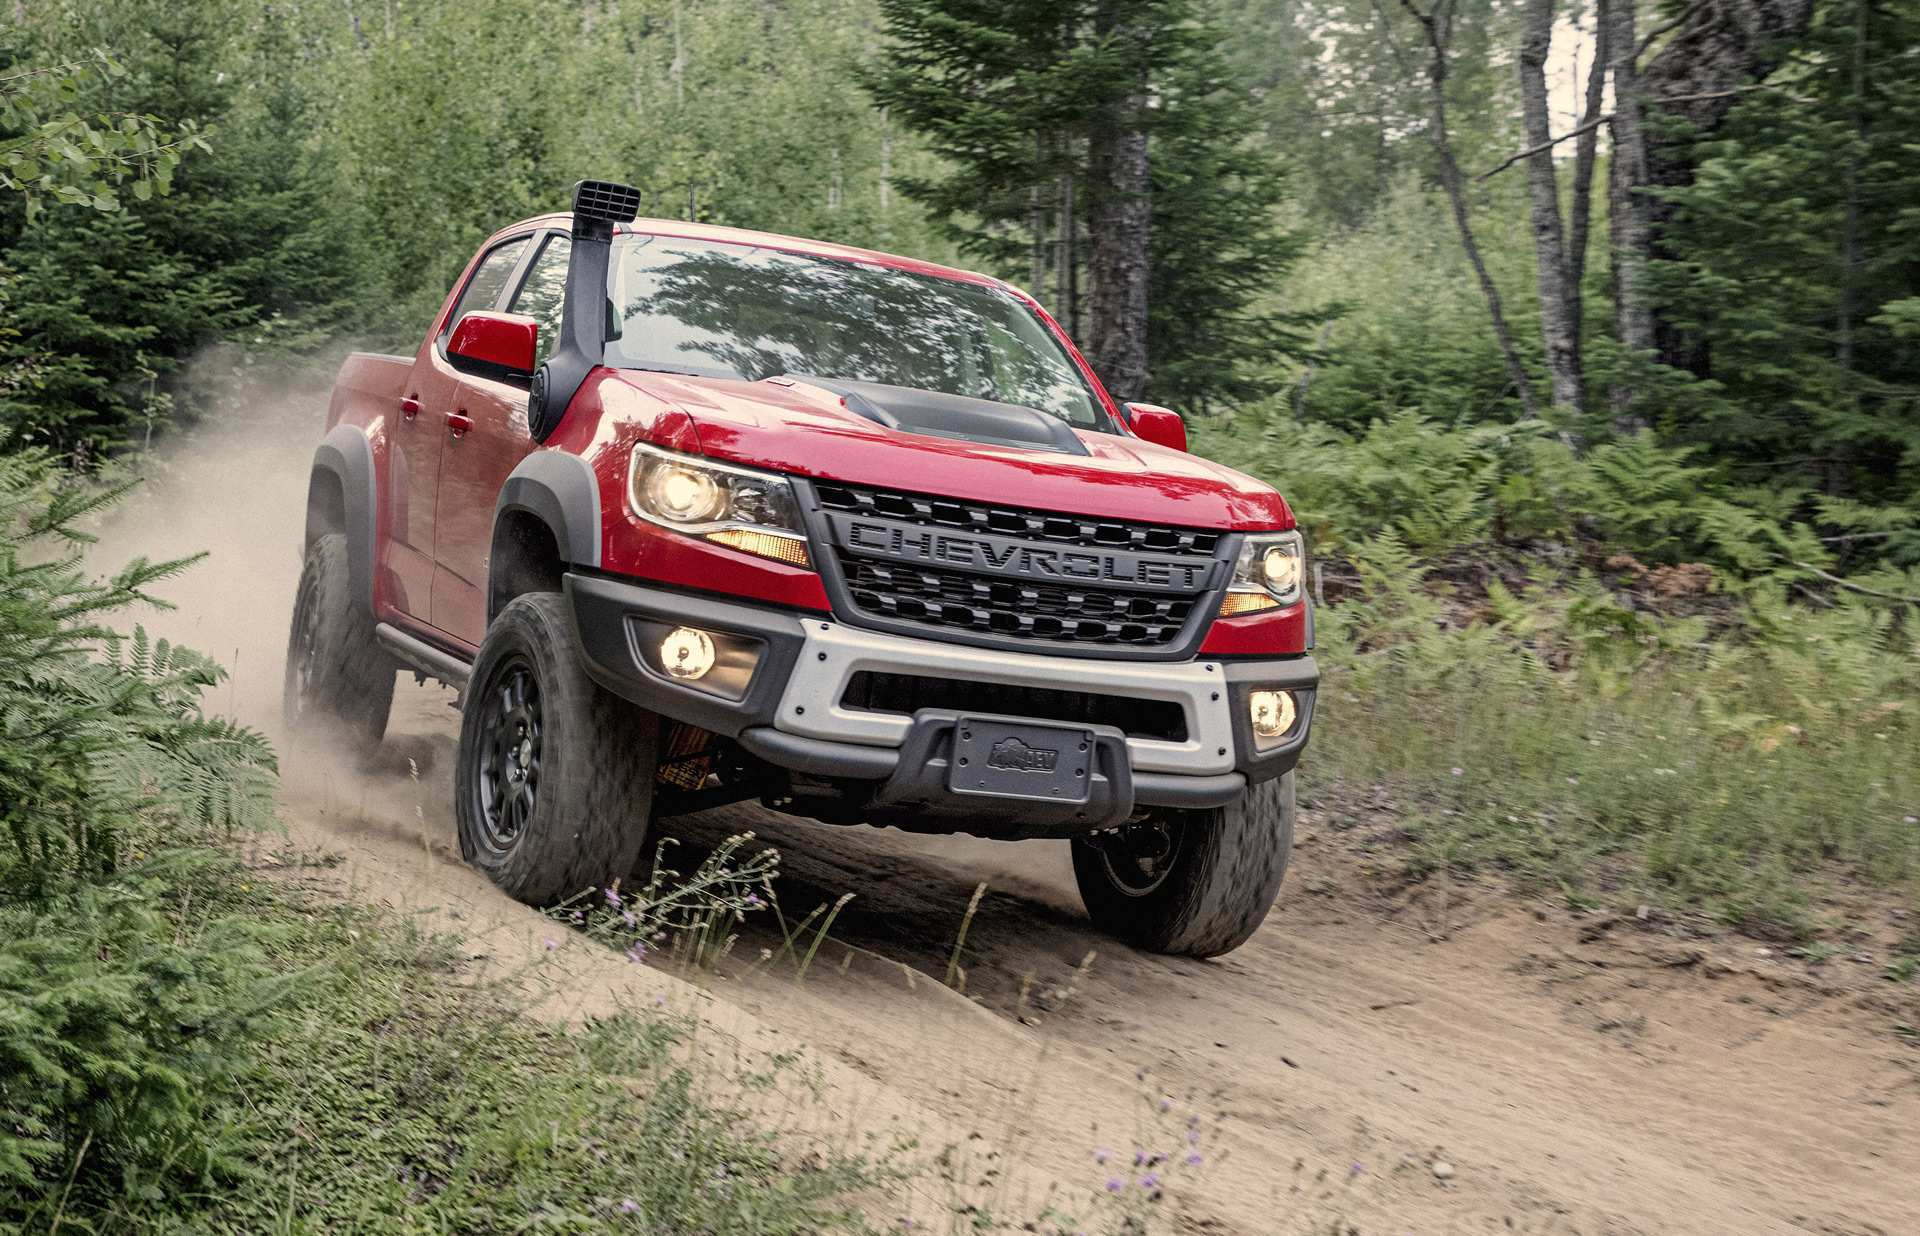 33 Best Review New Chevrolet Zr2 2019 First Drive Price Performance And Review New Concept by New Chevrolet Zr2 2019 First Drive Price Performance And Review